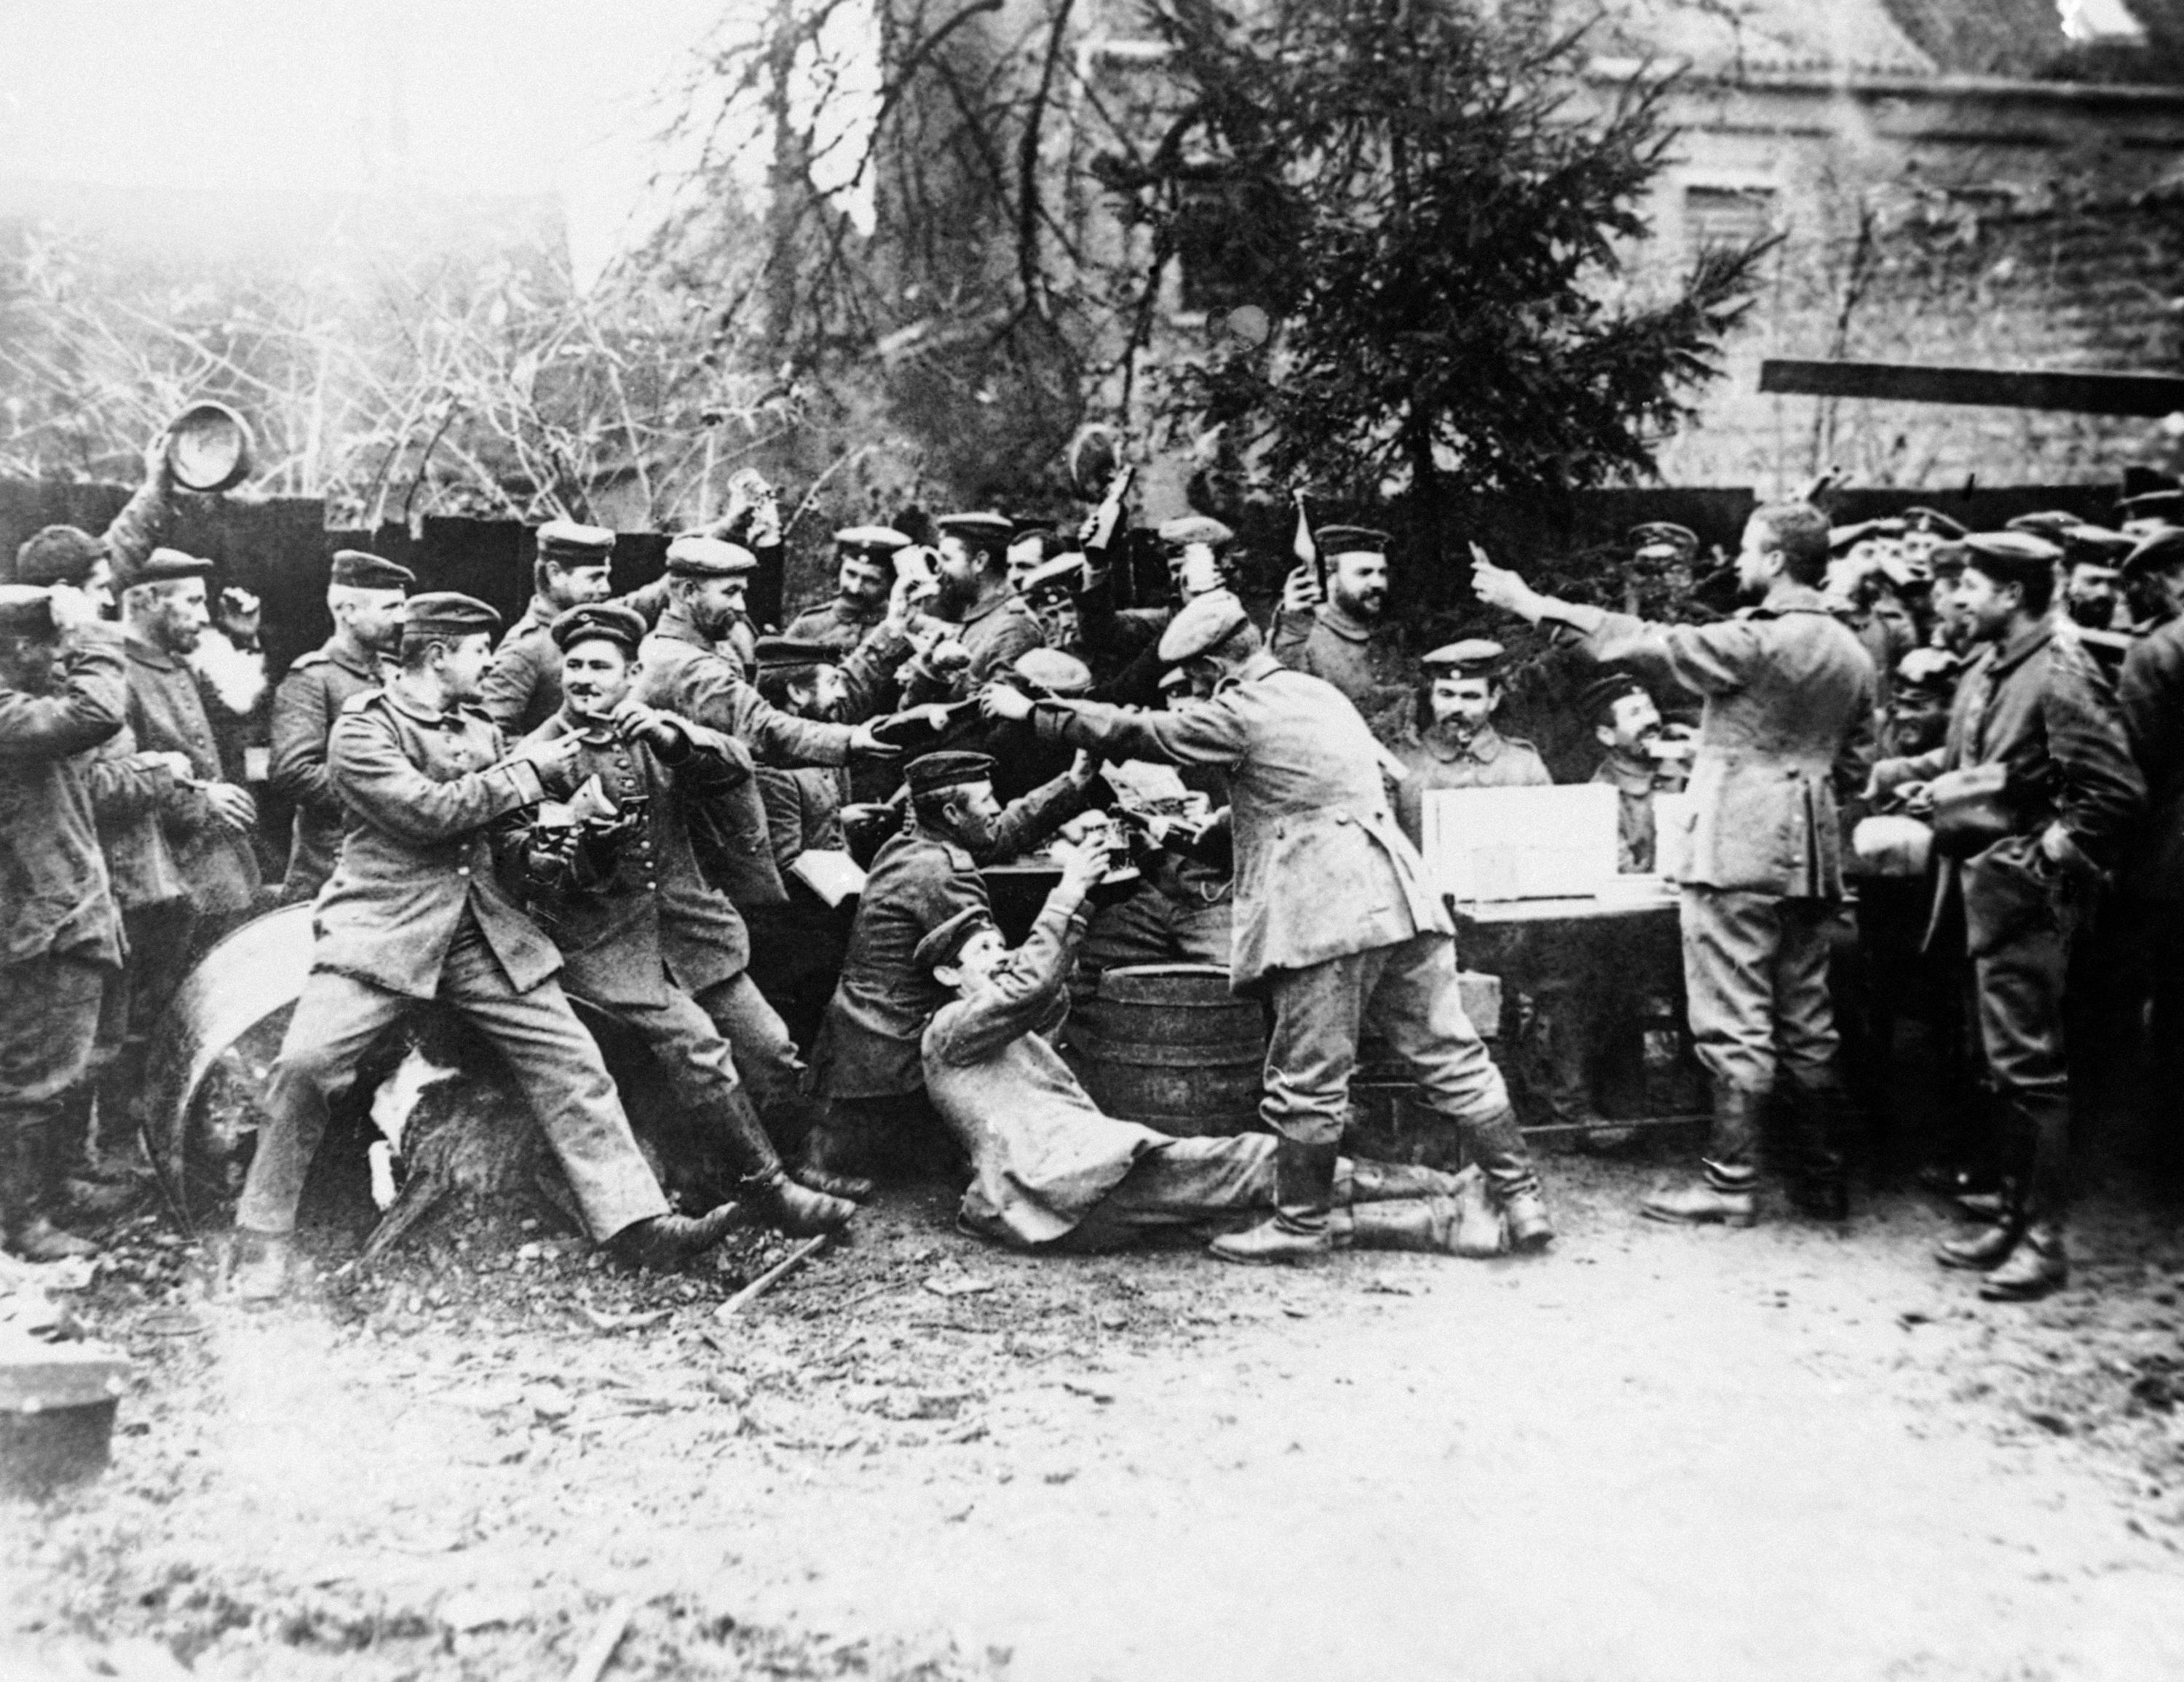 26 OF 100: In this 1914 file photo, German soldiers gather at Christmas at an unknown location during World War I.